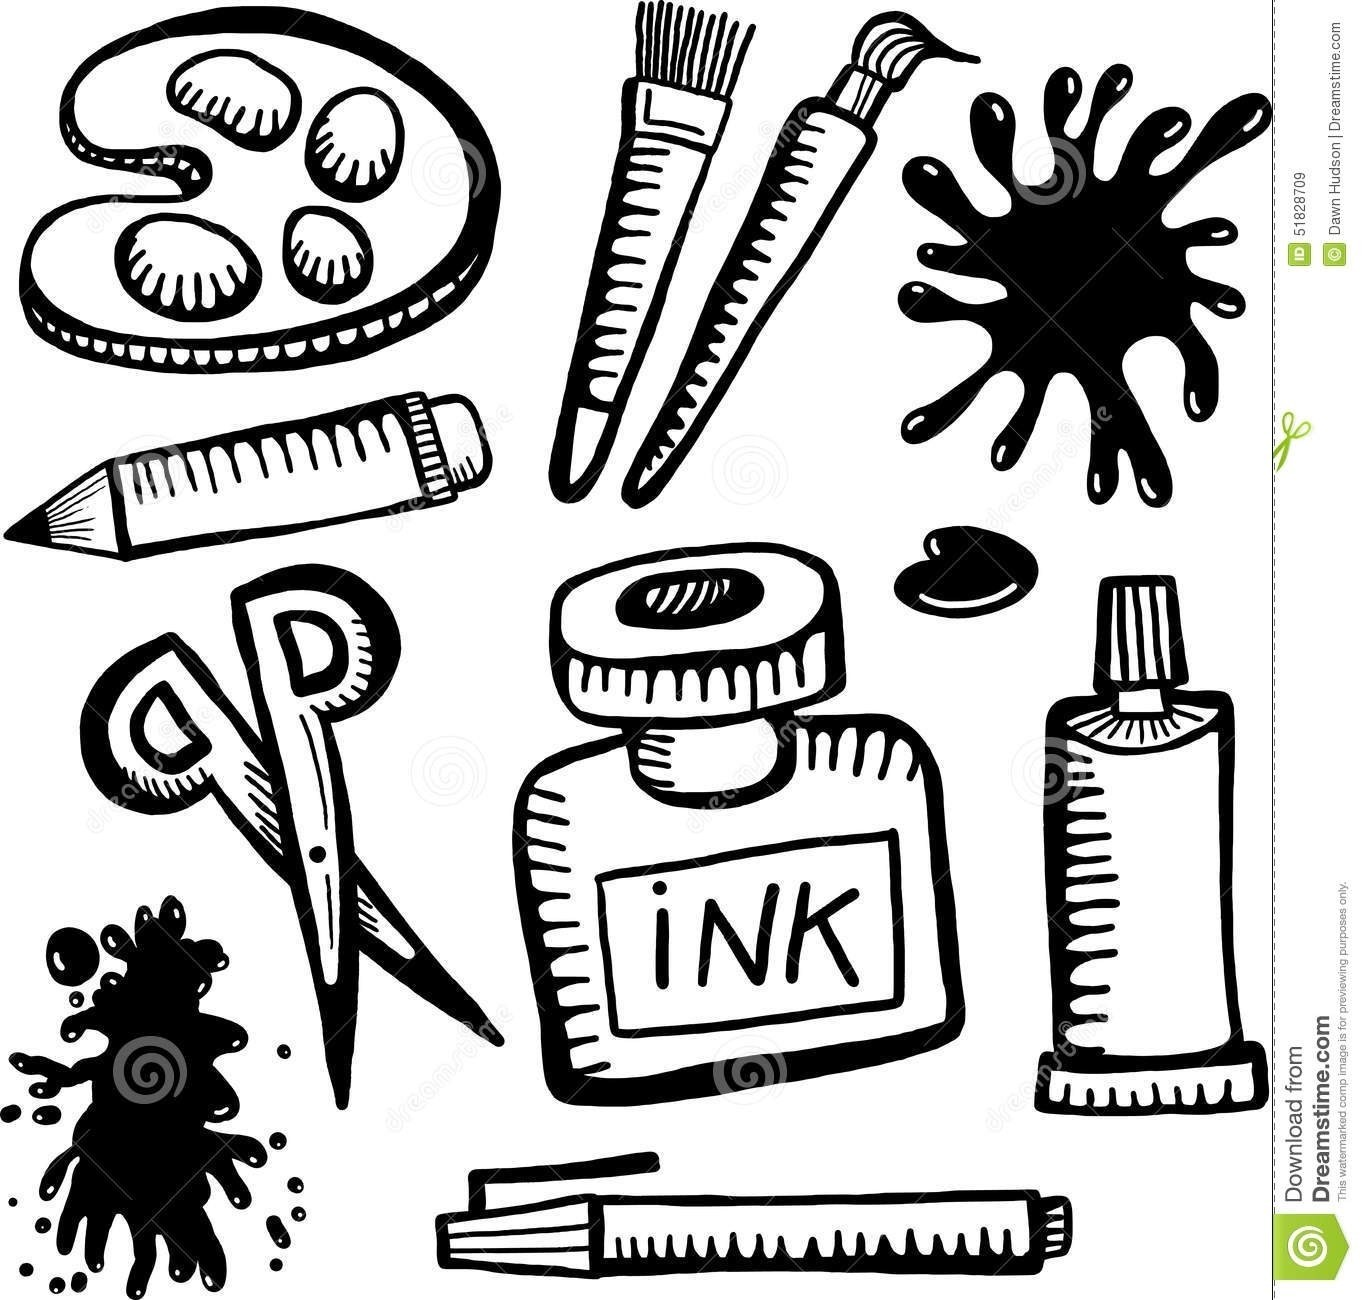 Crafts clipart black and white clip black and white Arts Crafts Clipart Black White Animehana - Decoratorist - #146706 clip black and white